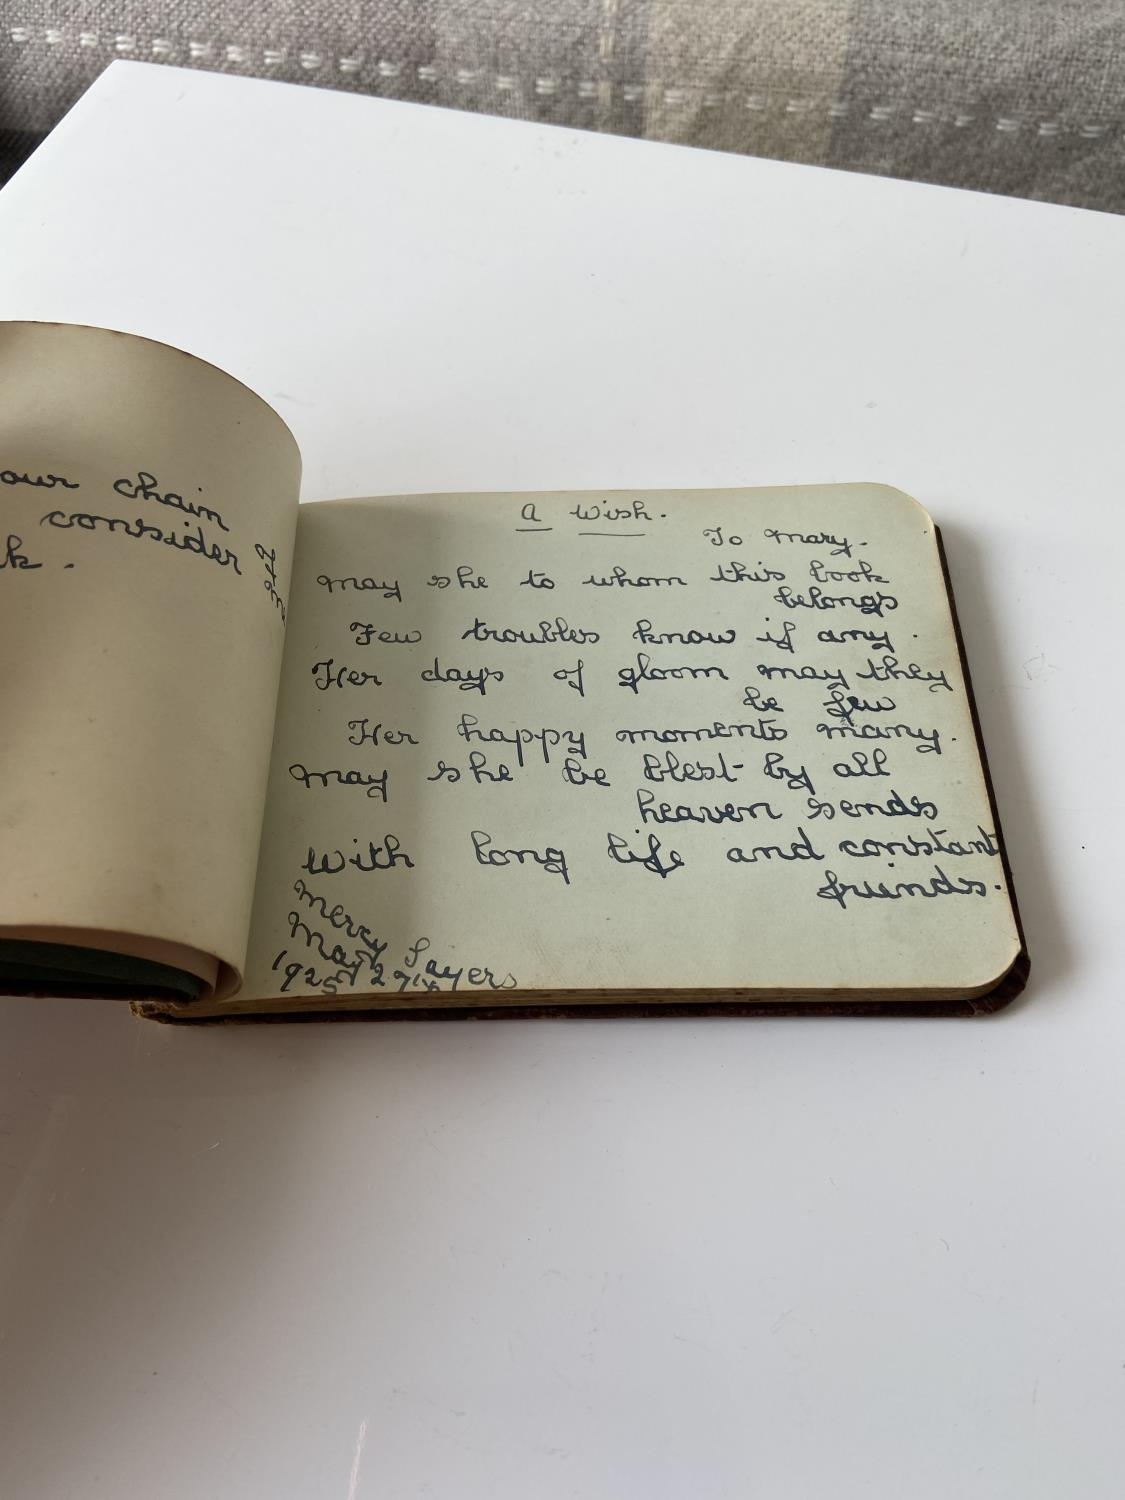 An old autograph album containing various poems, sayings & doodles - Image 6 of 18